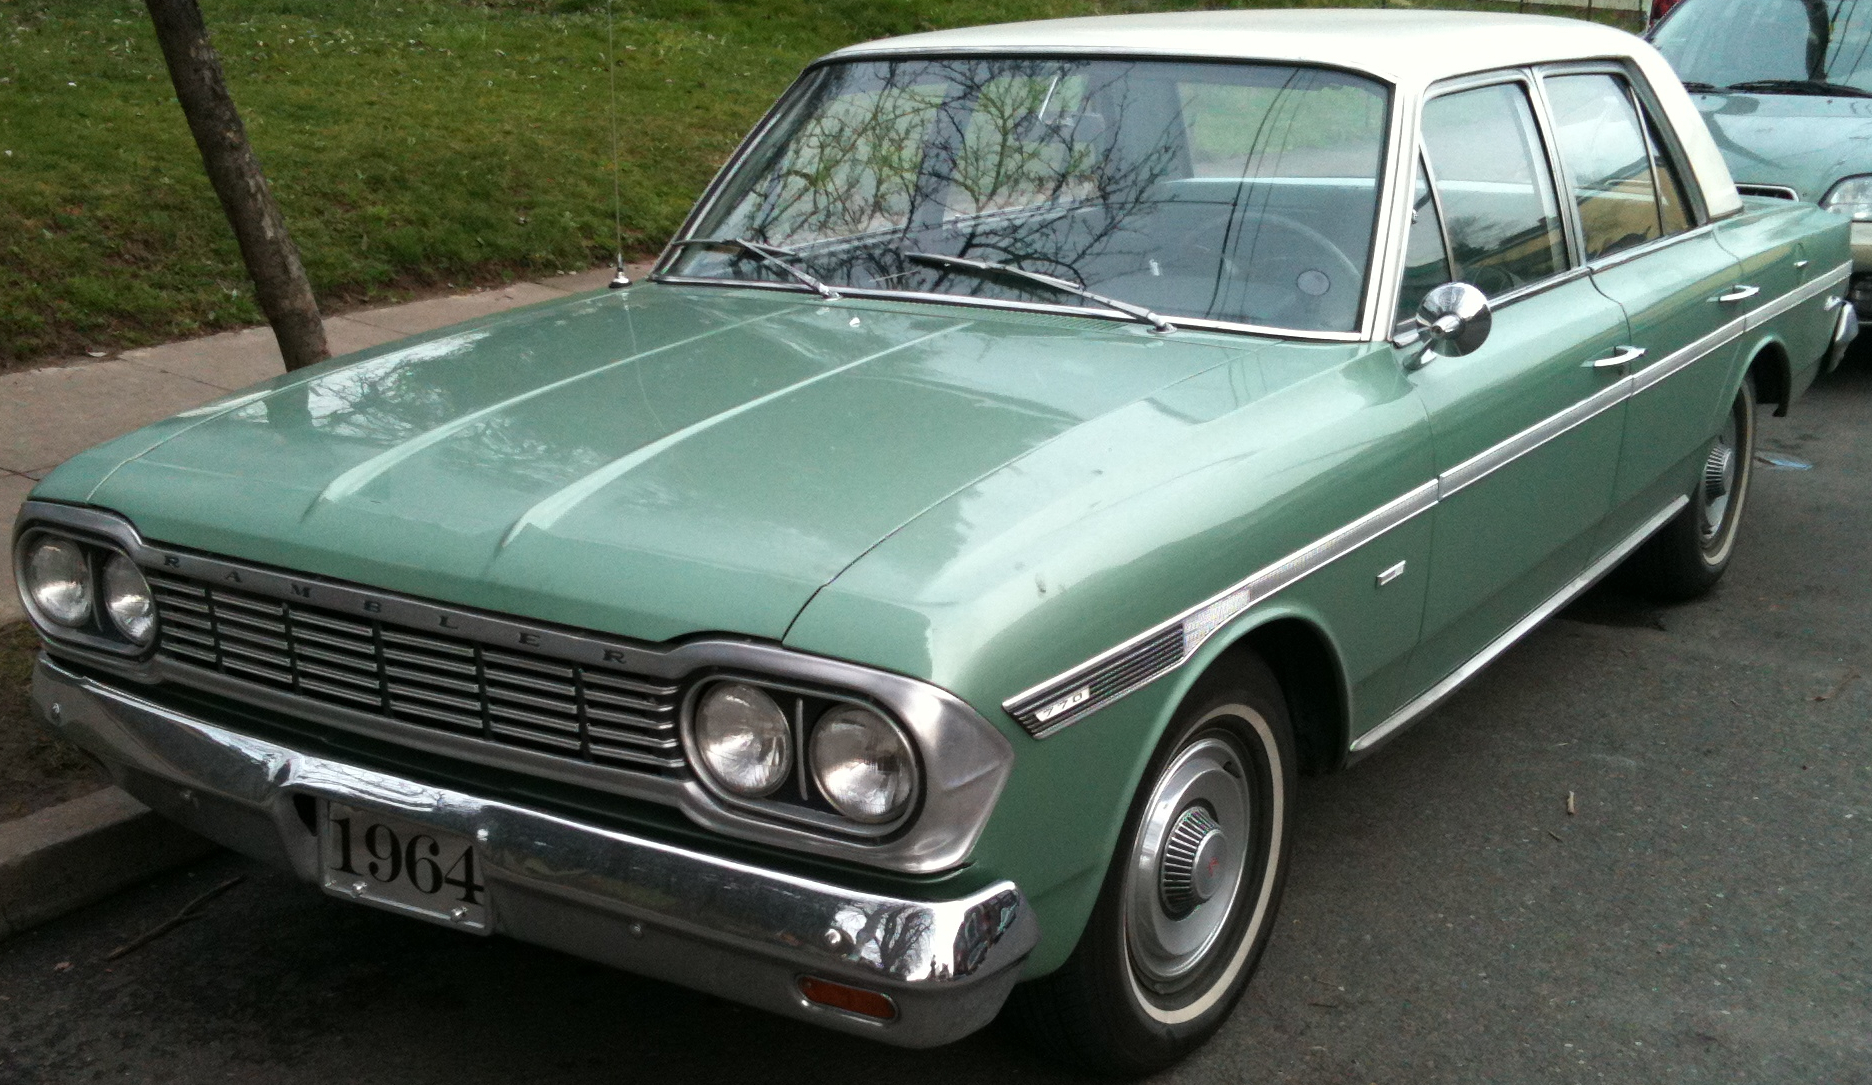 http://bridgetownblog.files.wordpress.com/2011/03/1964-amc-rambler-classic-770.jpg